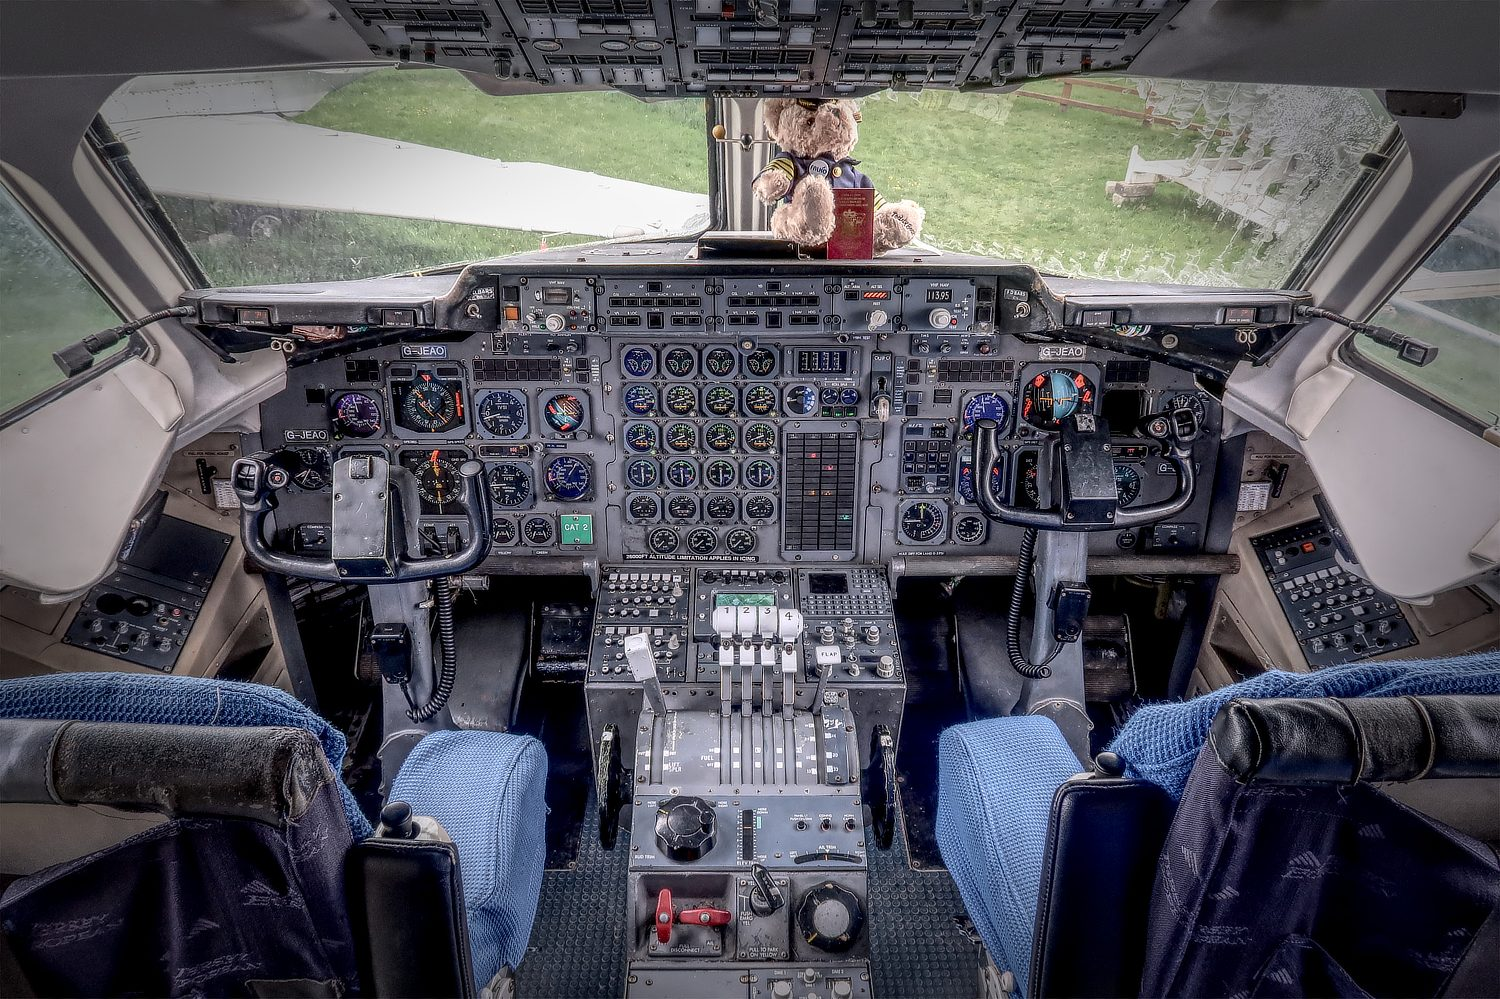 Hawker Siddeley HS 146 flight deck photo